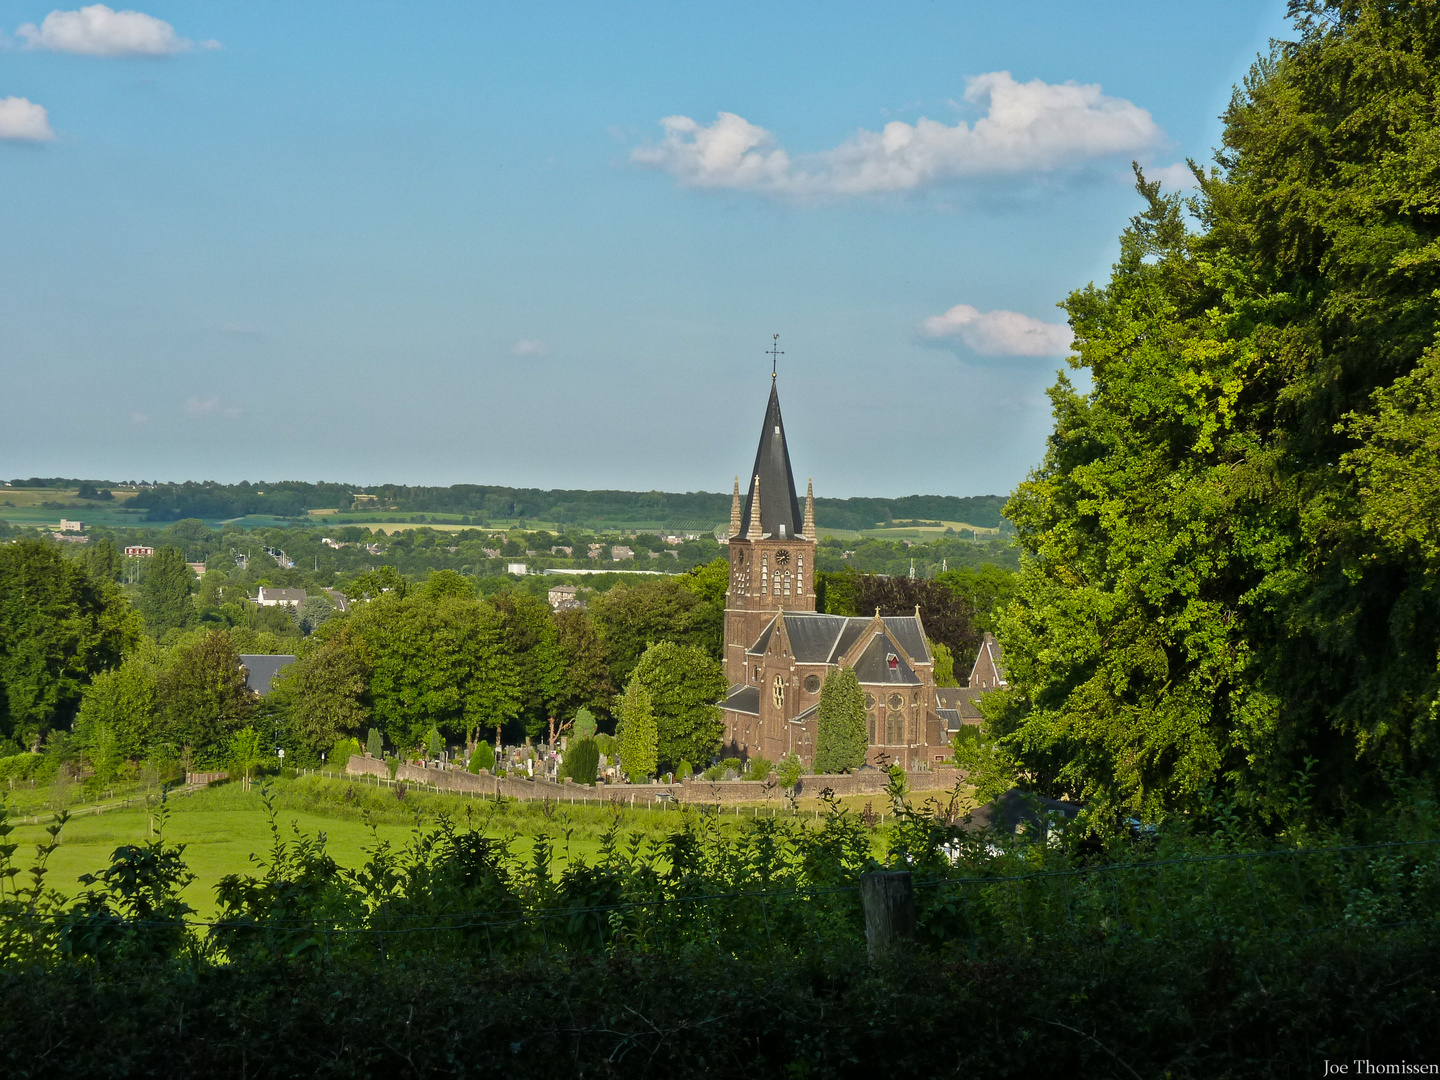 The church of St. Peter's Top near Maastricht